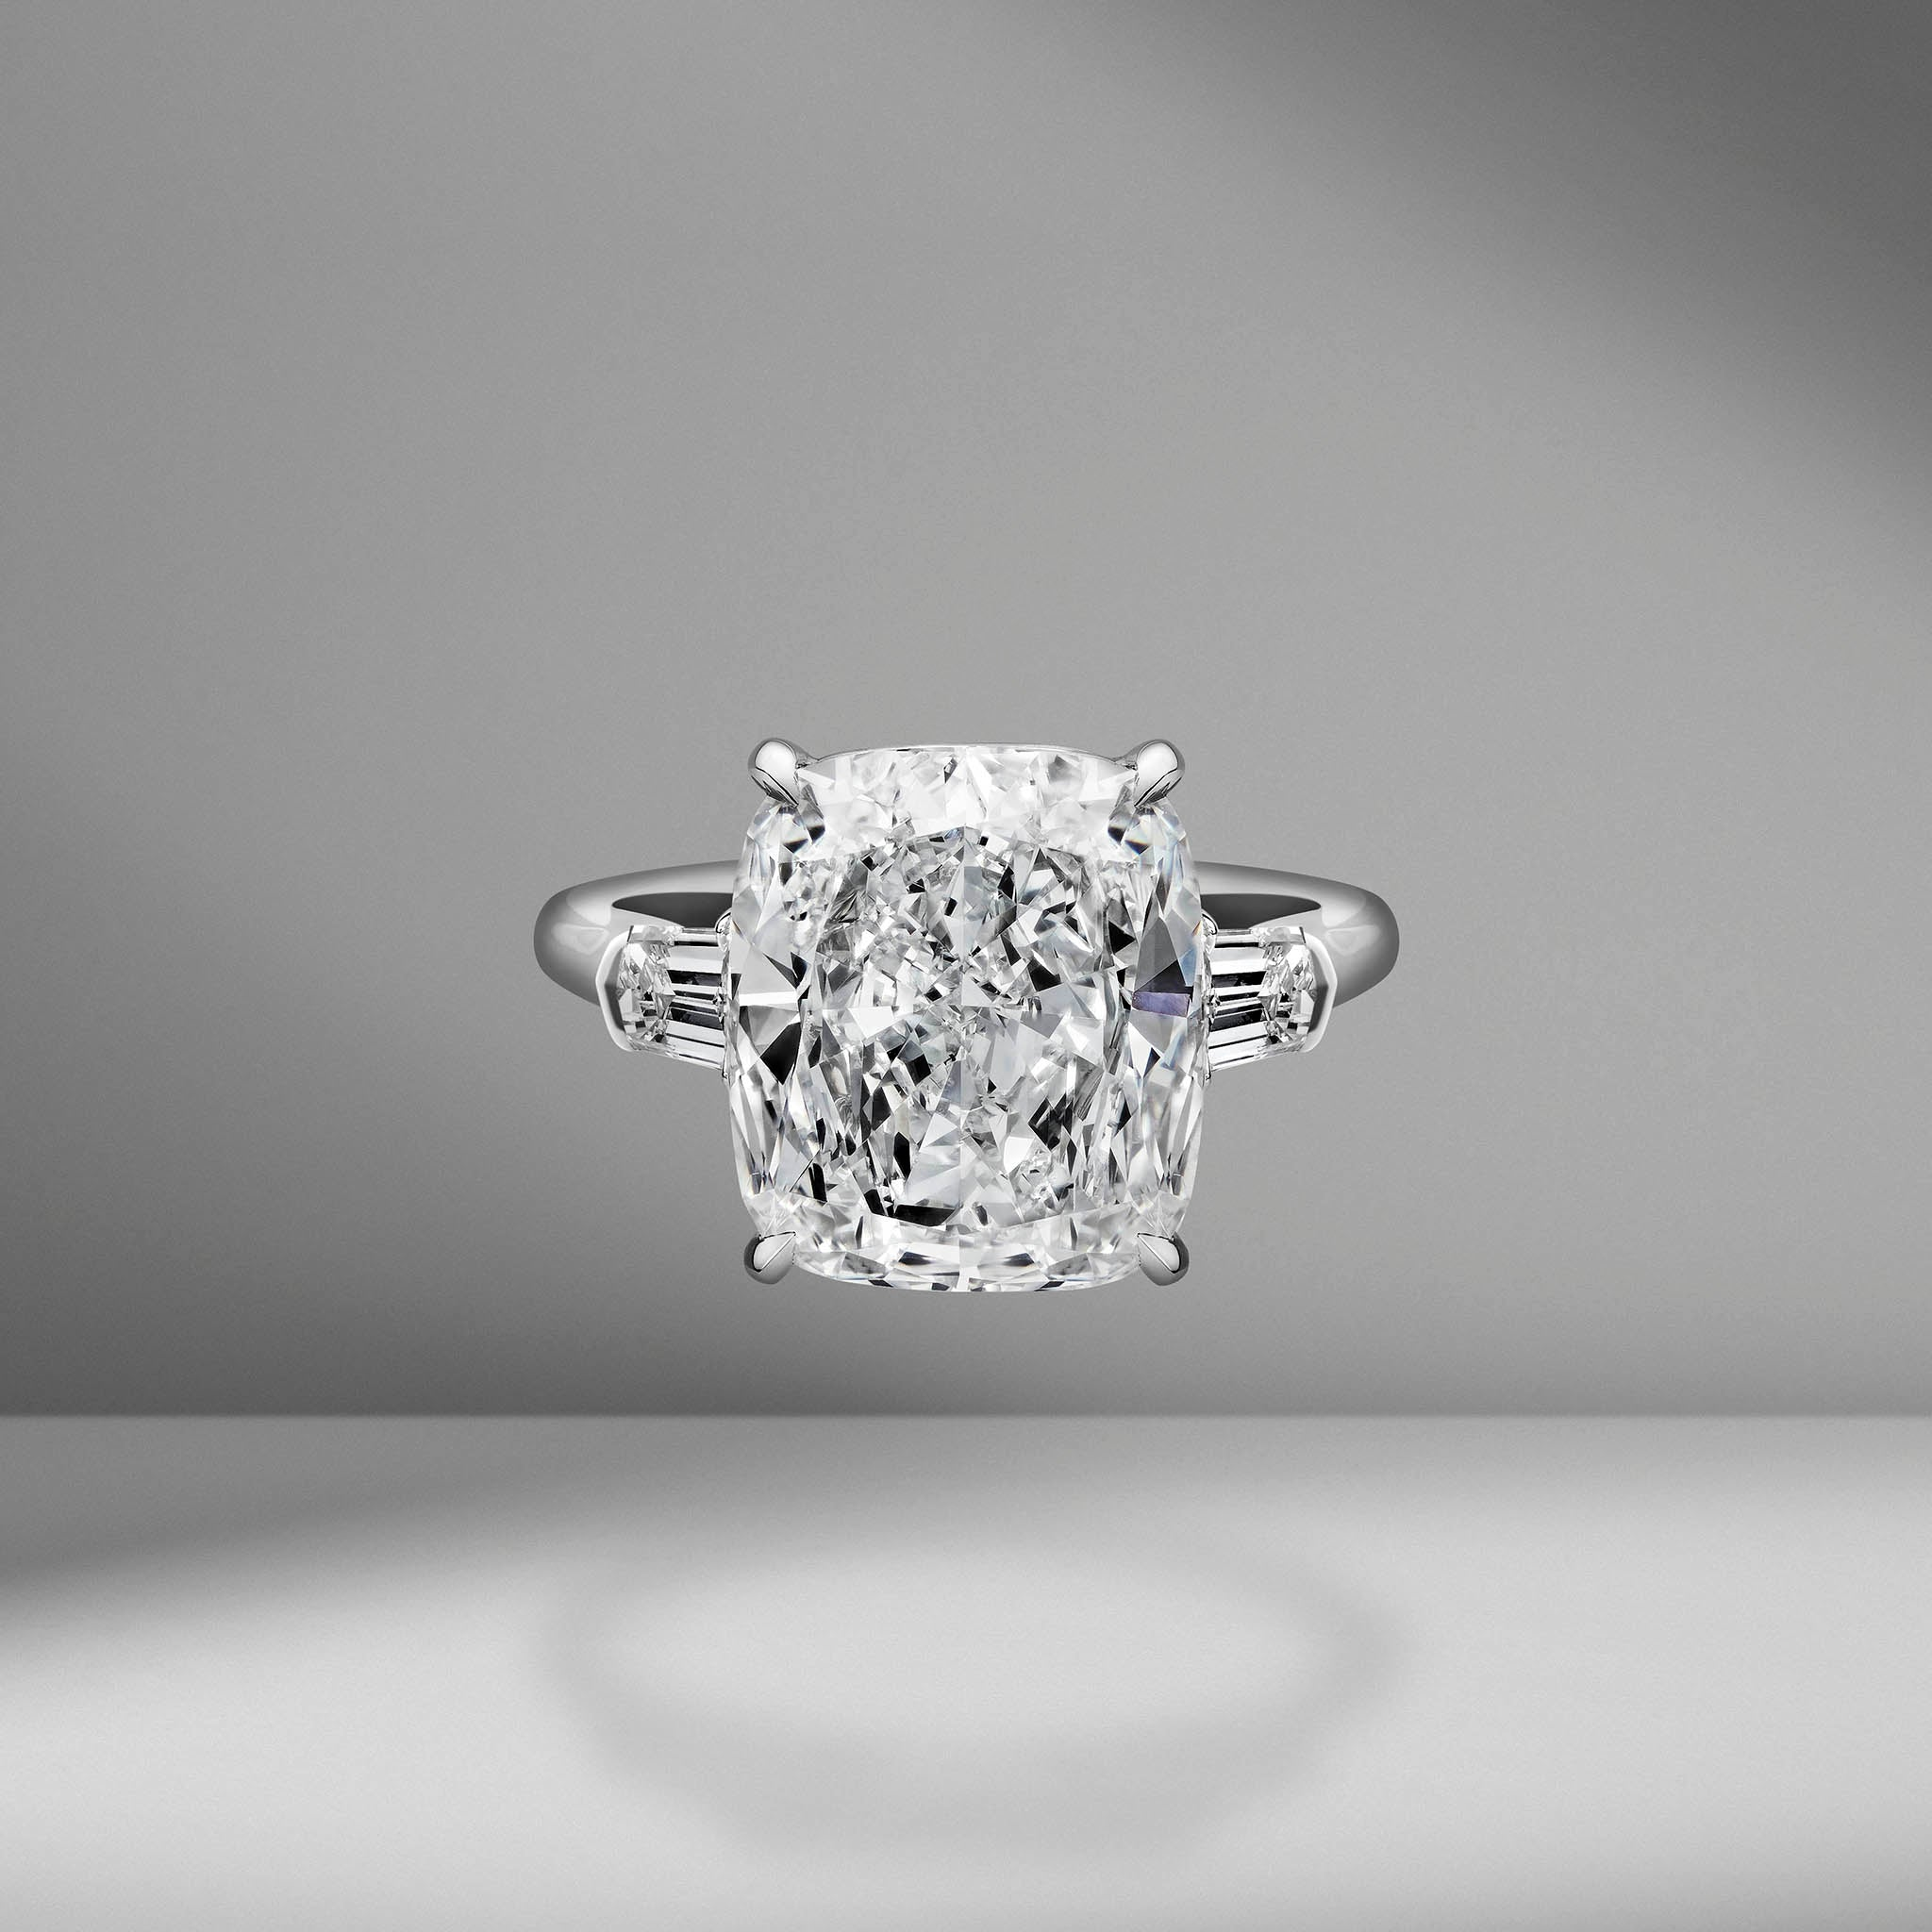 Cushion Cut Engagement Ring with Tapered Bullets